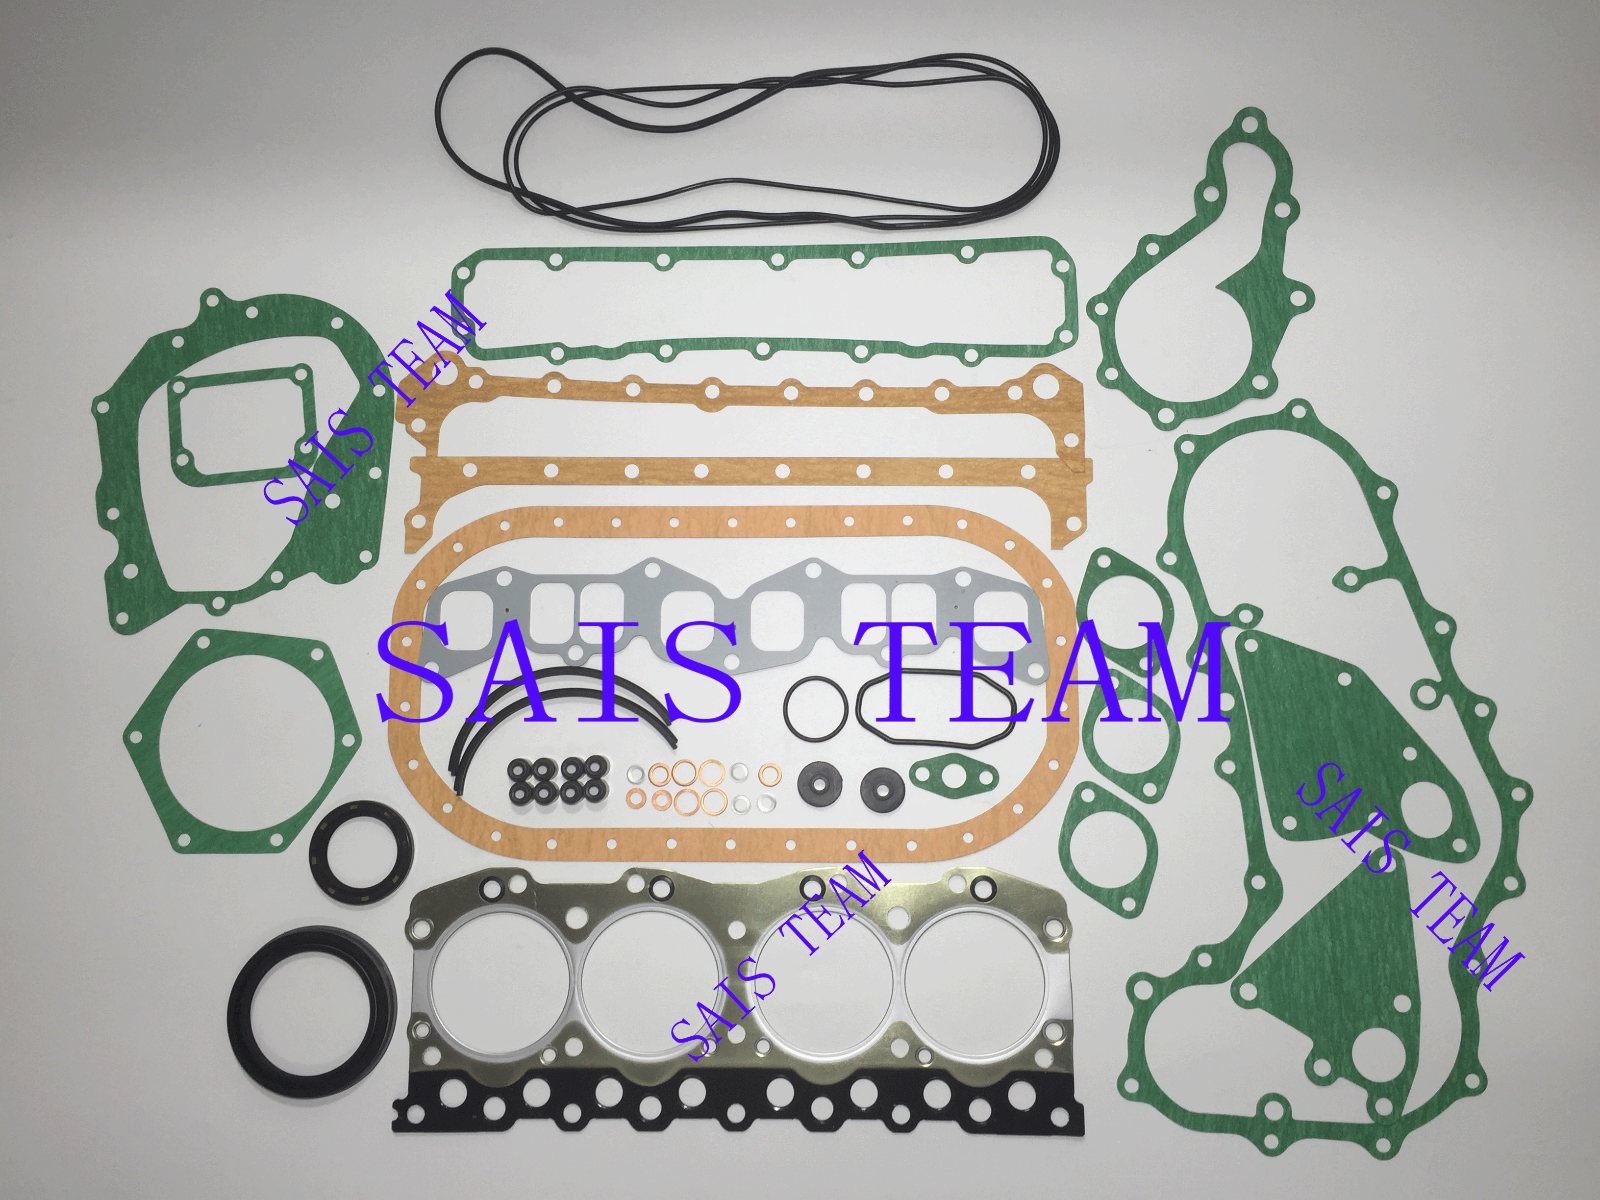 ISUZU C221 Engine Full Gasket Set kit for Truck Forklift Excavator etc